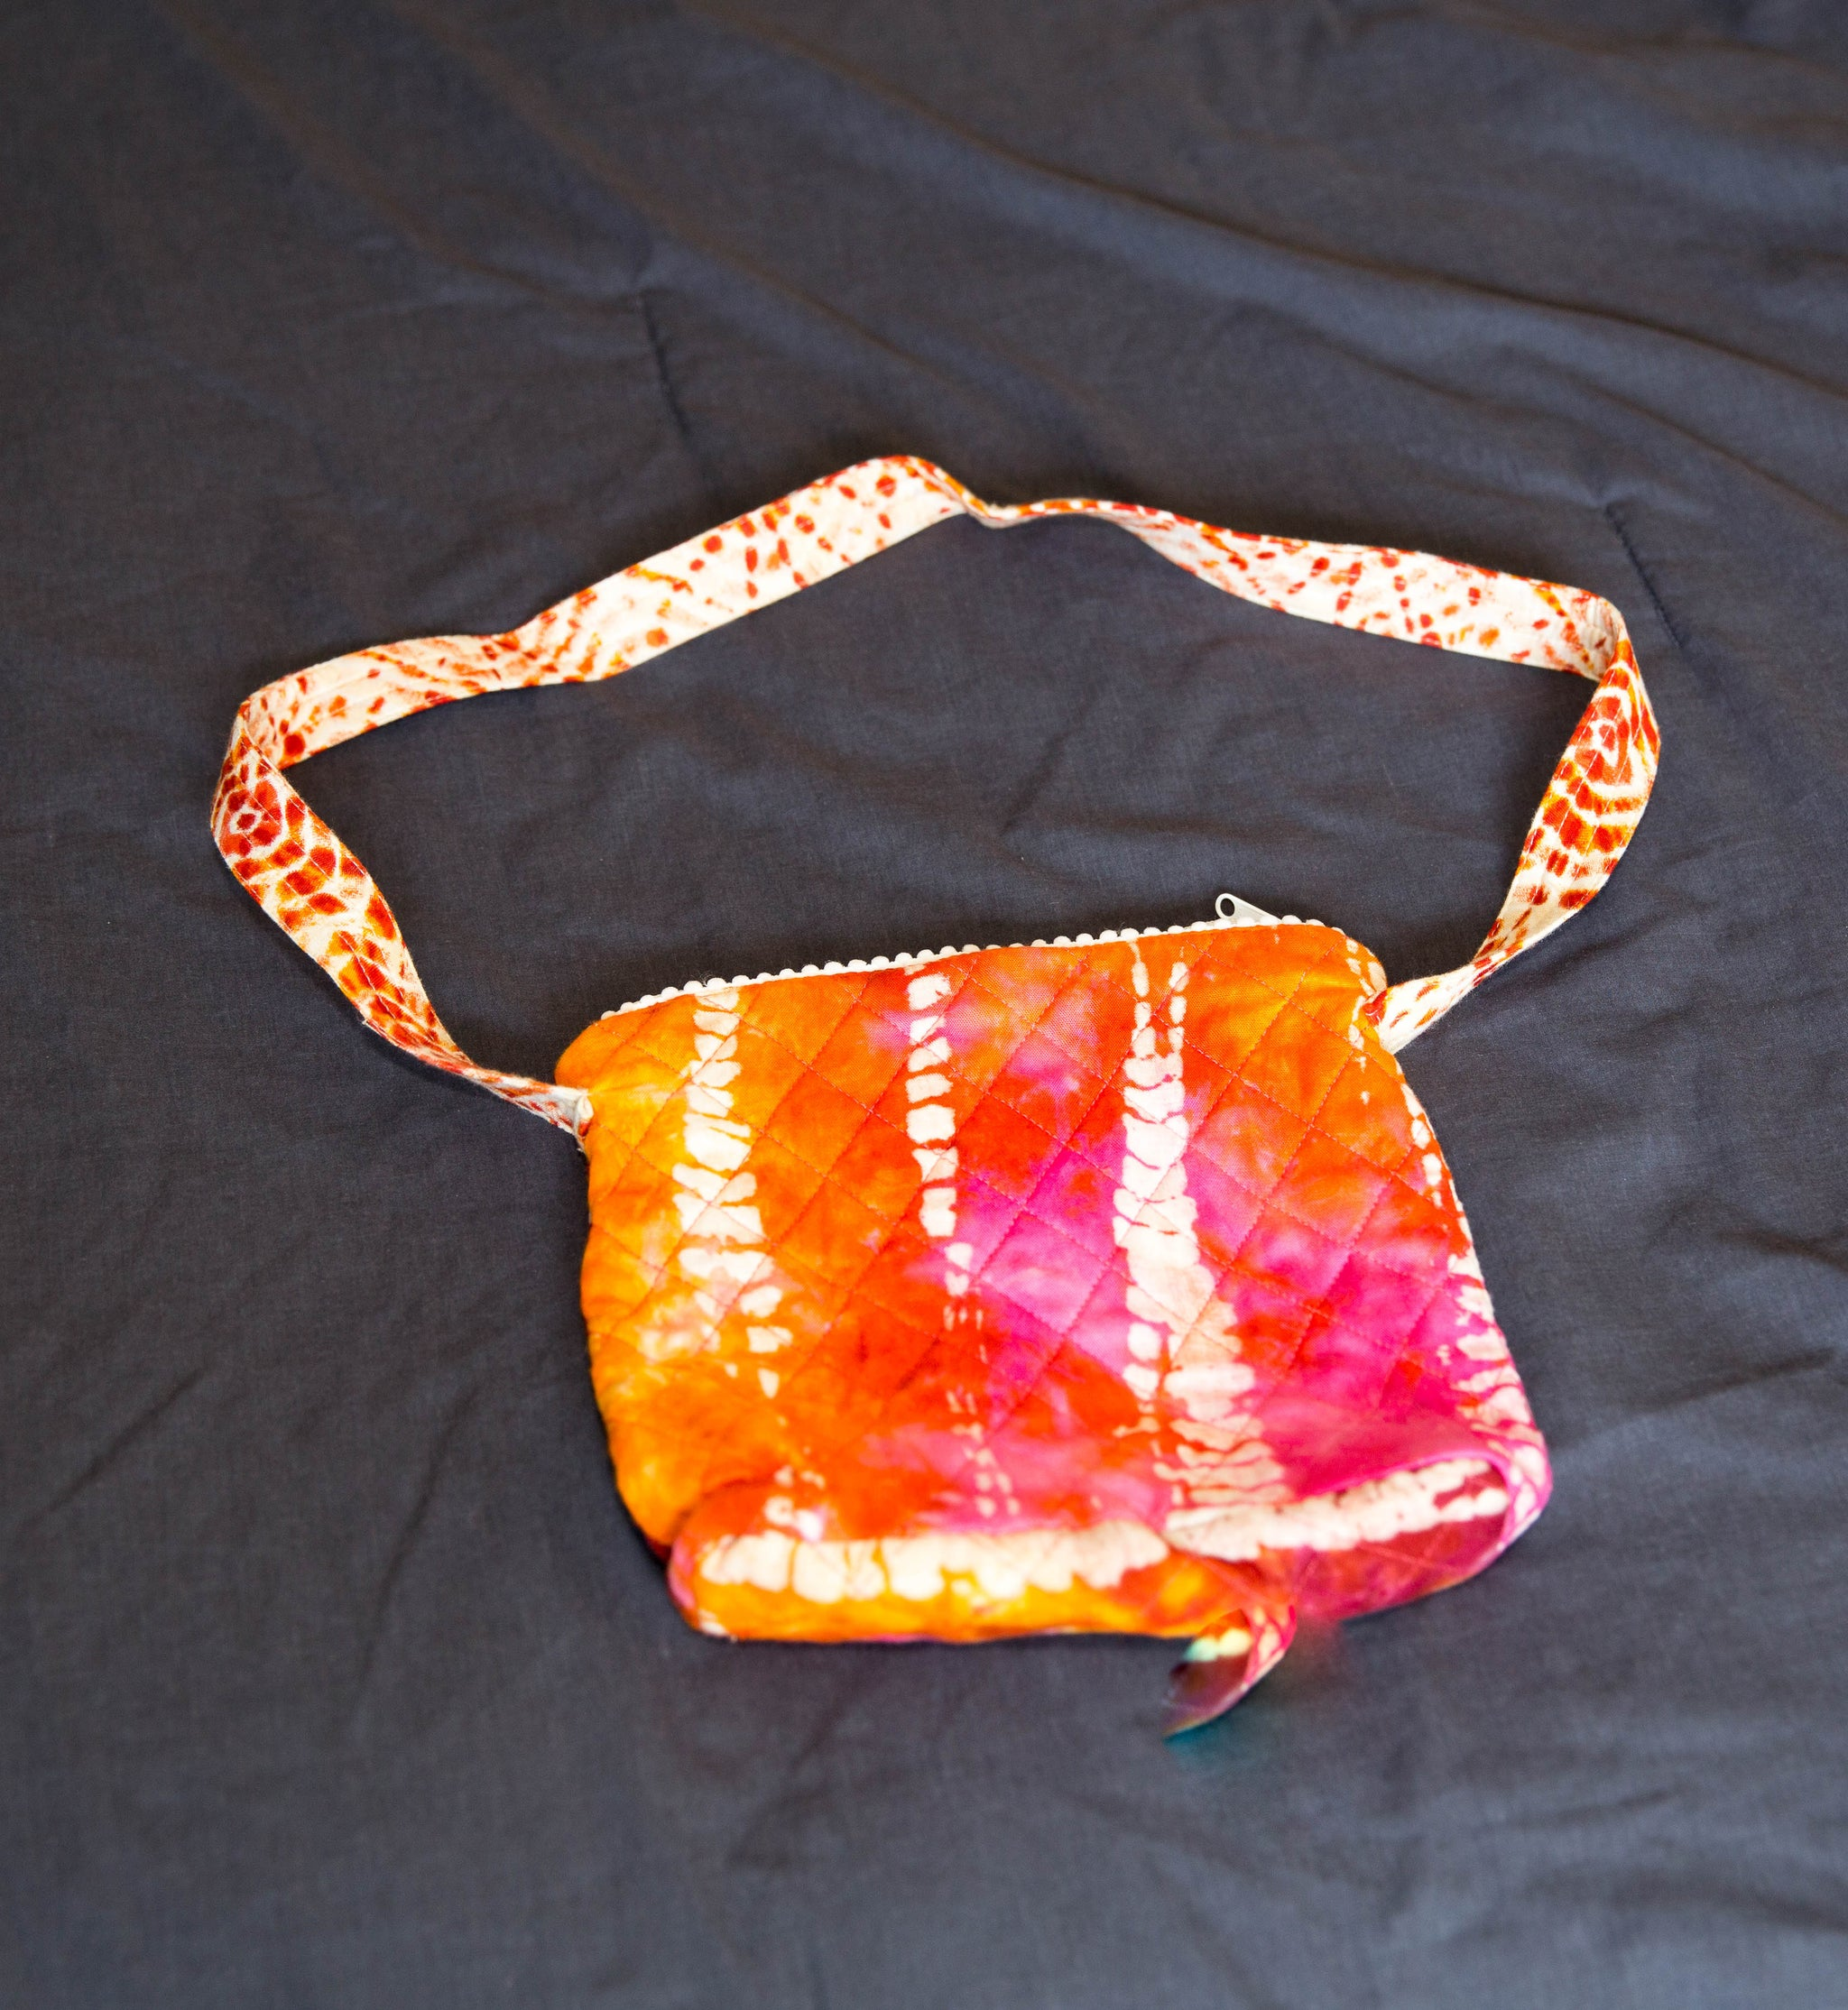 Tie Dye Sling bag - Brown Orange and Pink